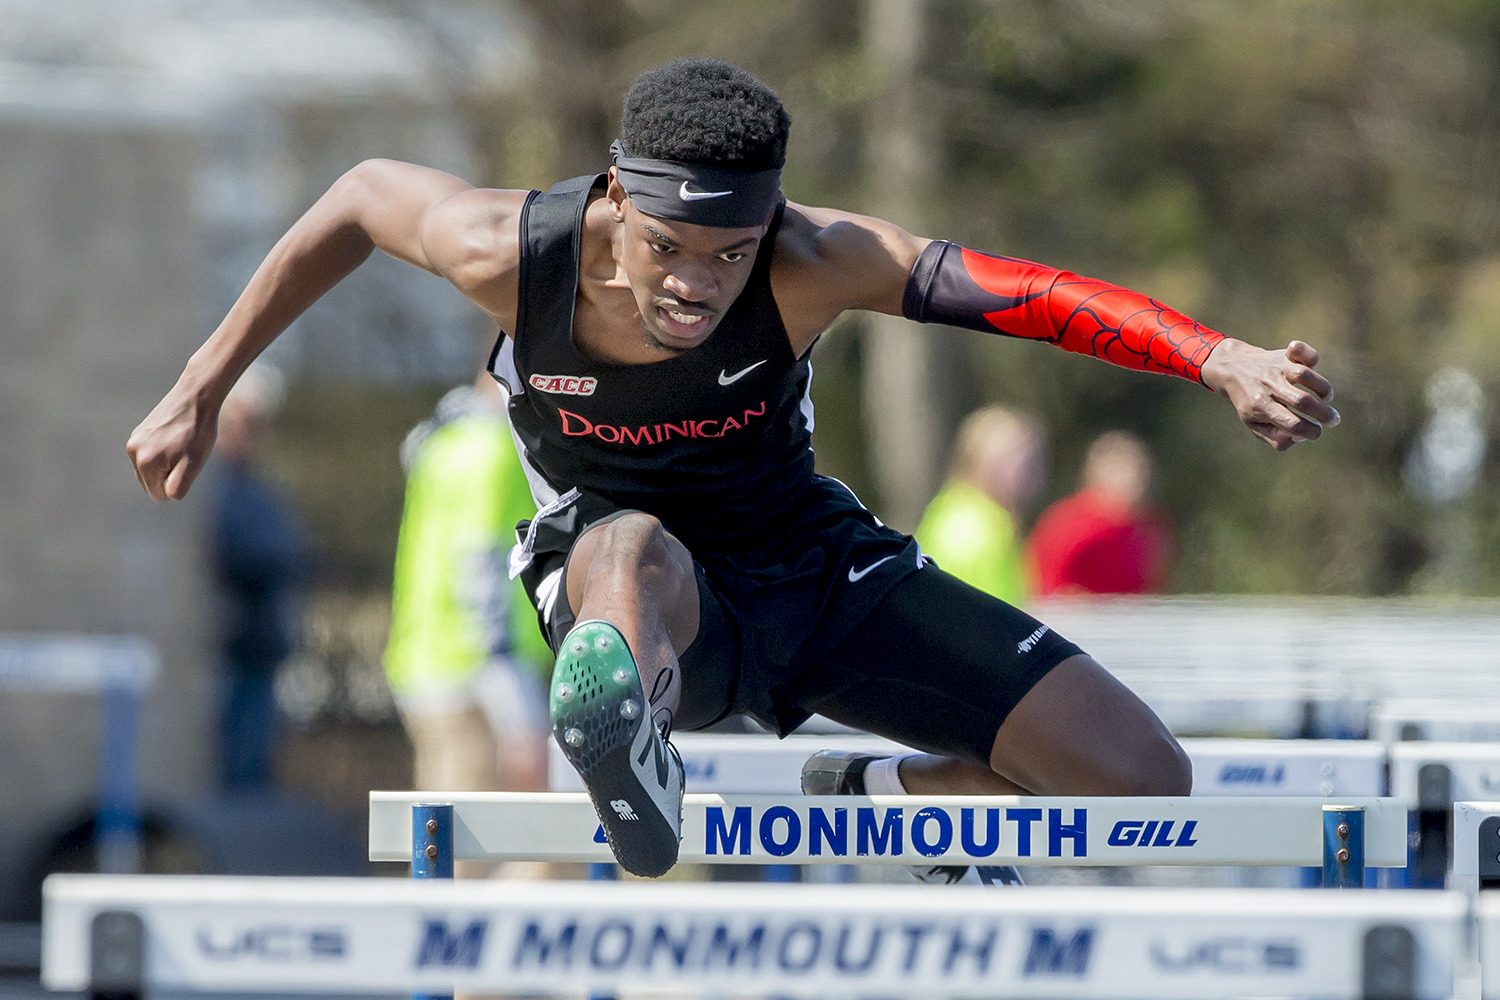 PIERRETTE WINS 110M HURDLES AT YALE SPRINGTIME INVITATIONAL